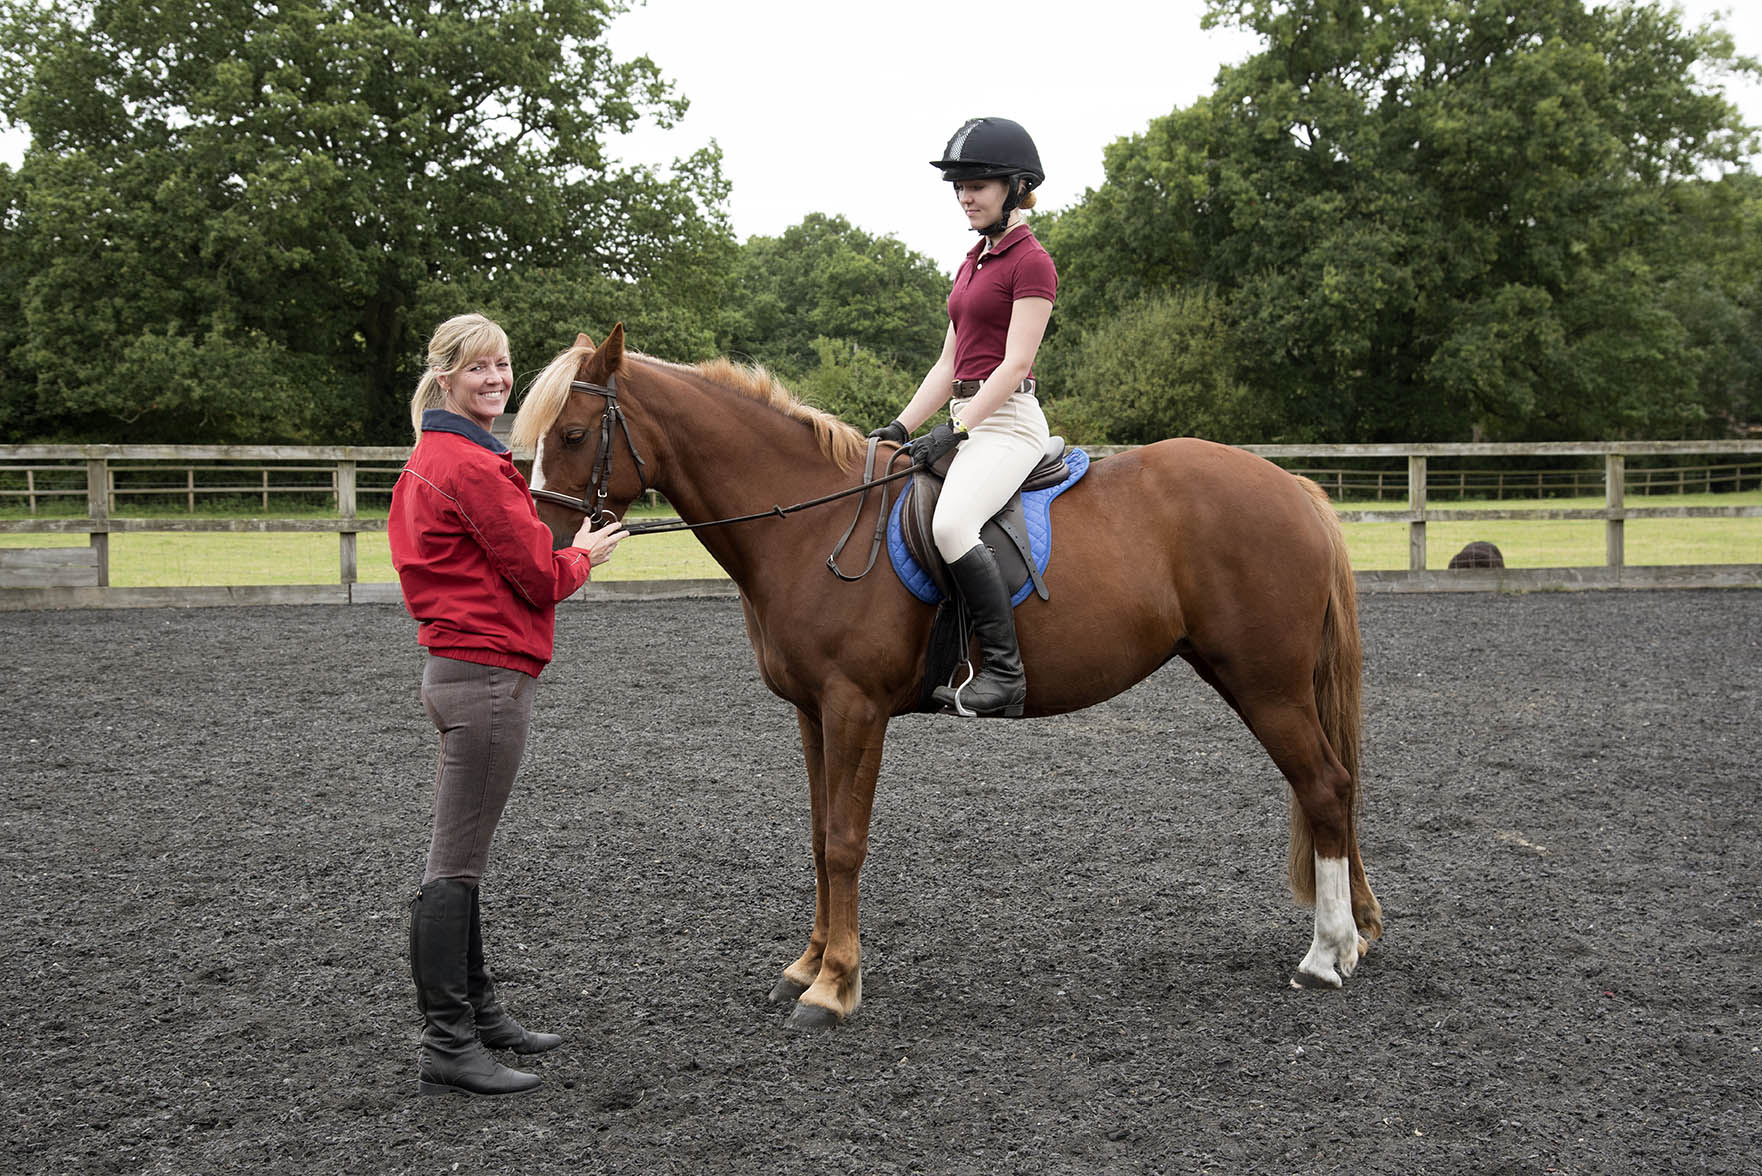 Equine Apprenticeship Myths - BUSTED!